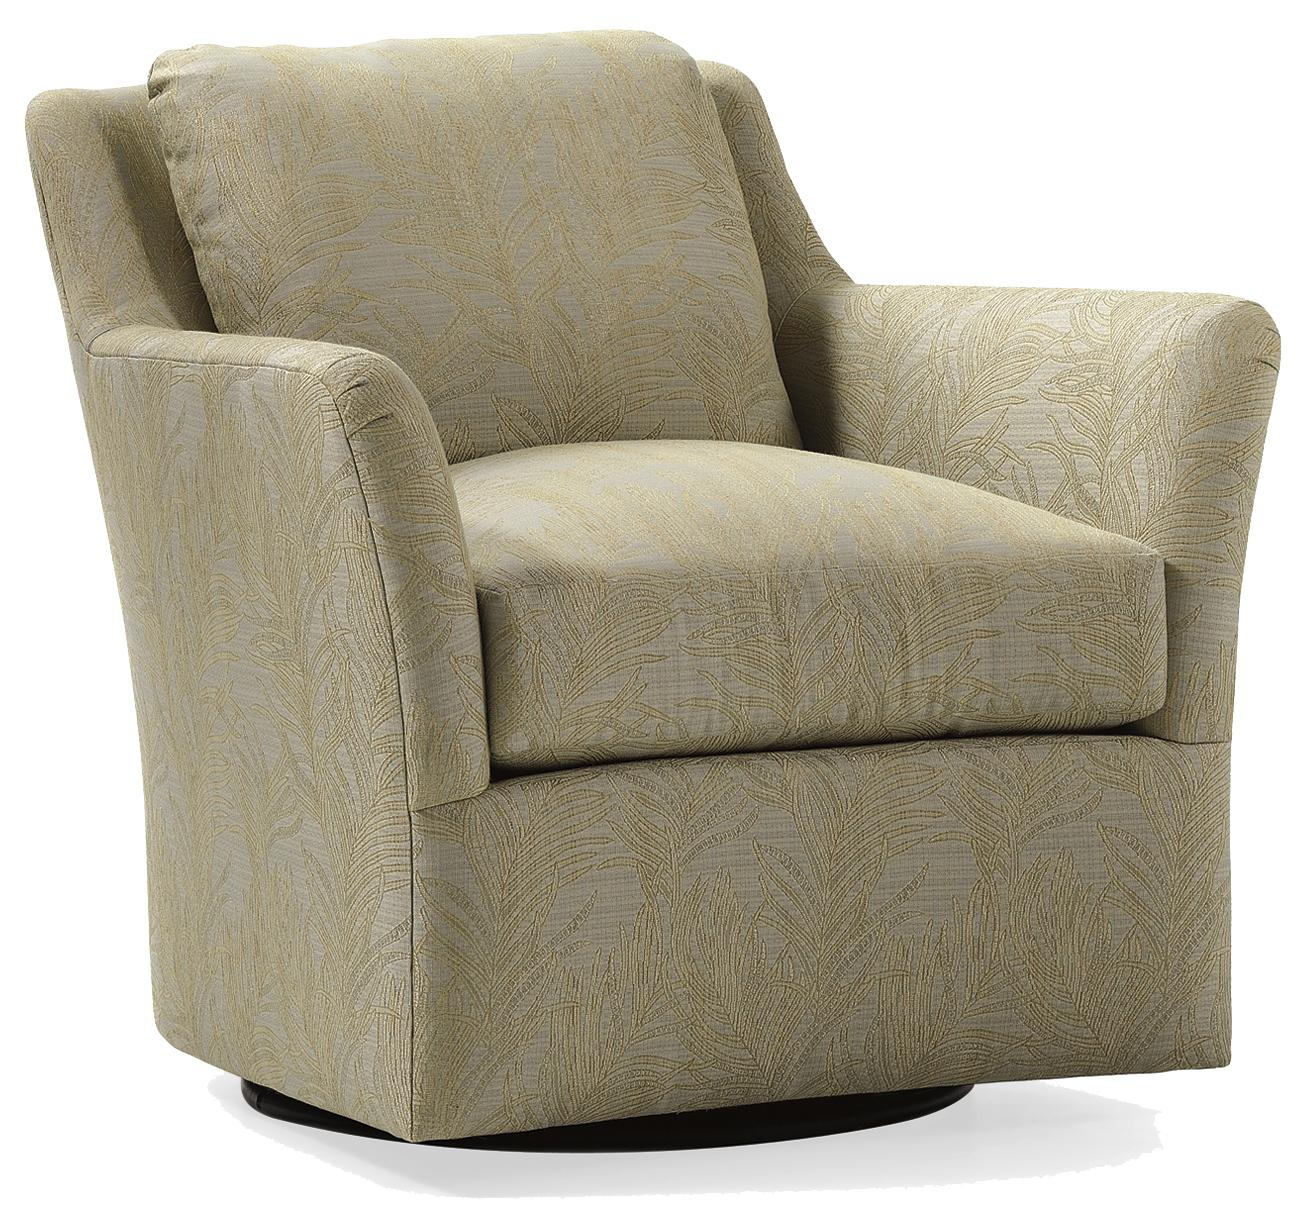 Jessica Charles Fine Upholstered Accents Addison Upholstered